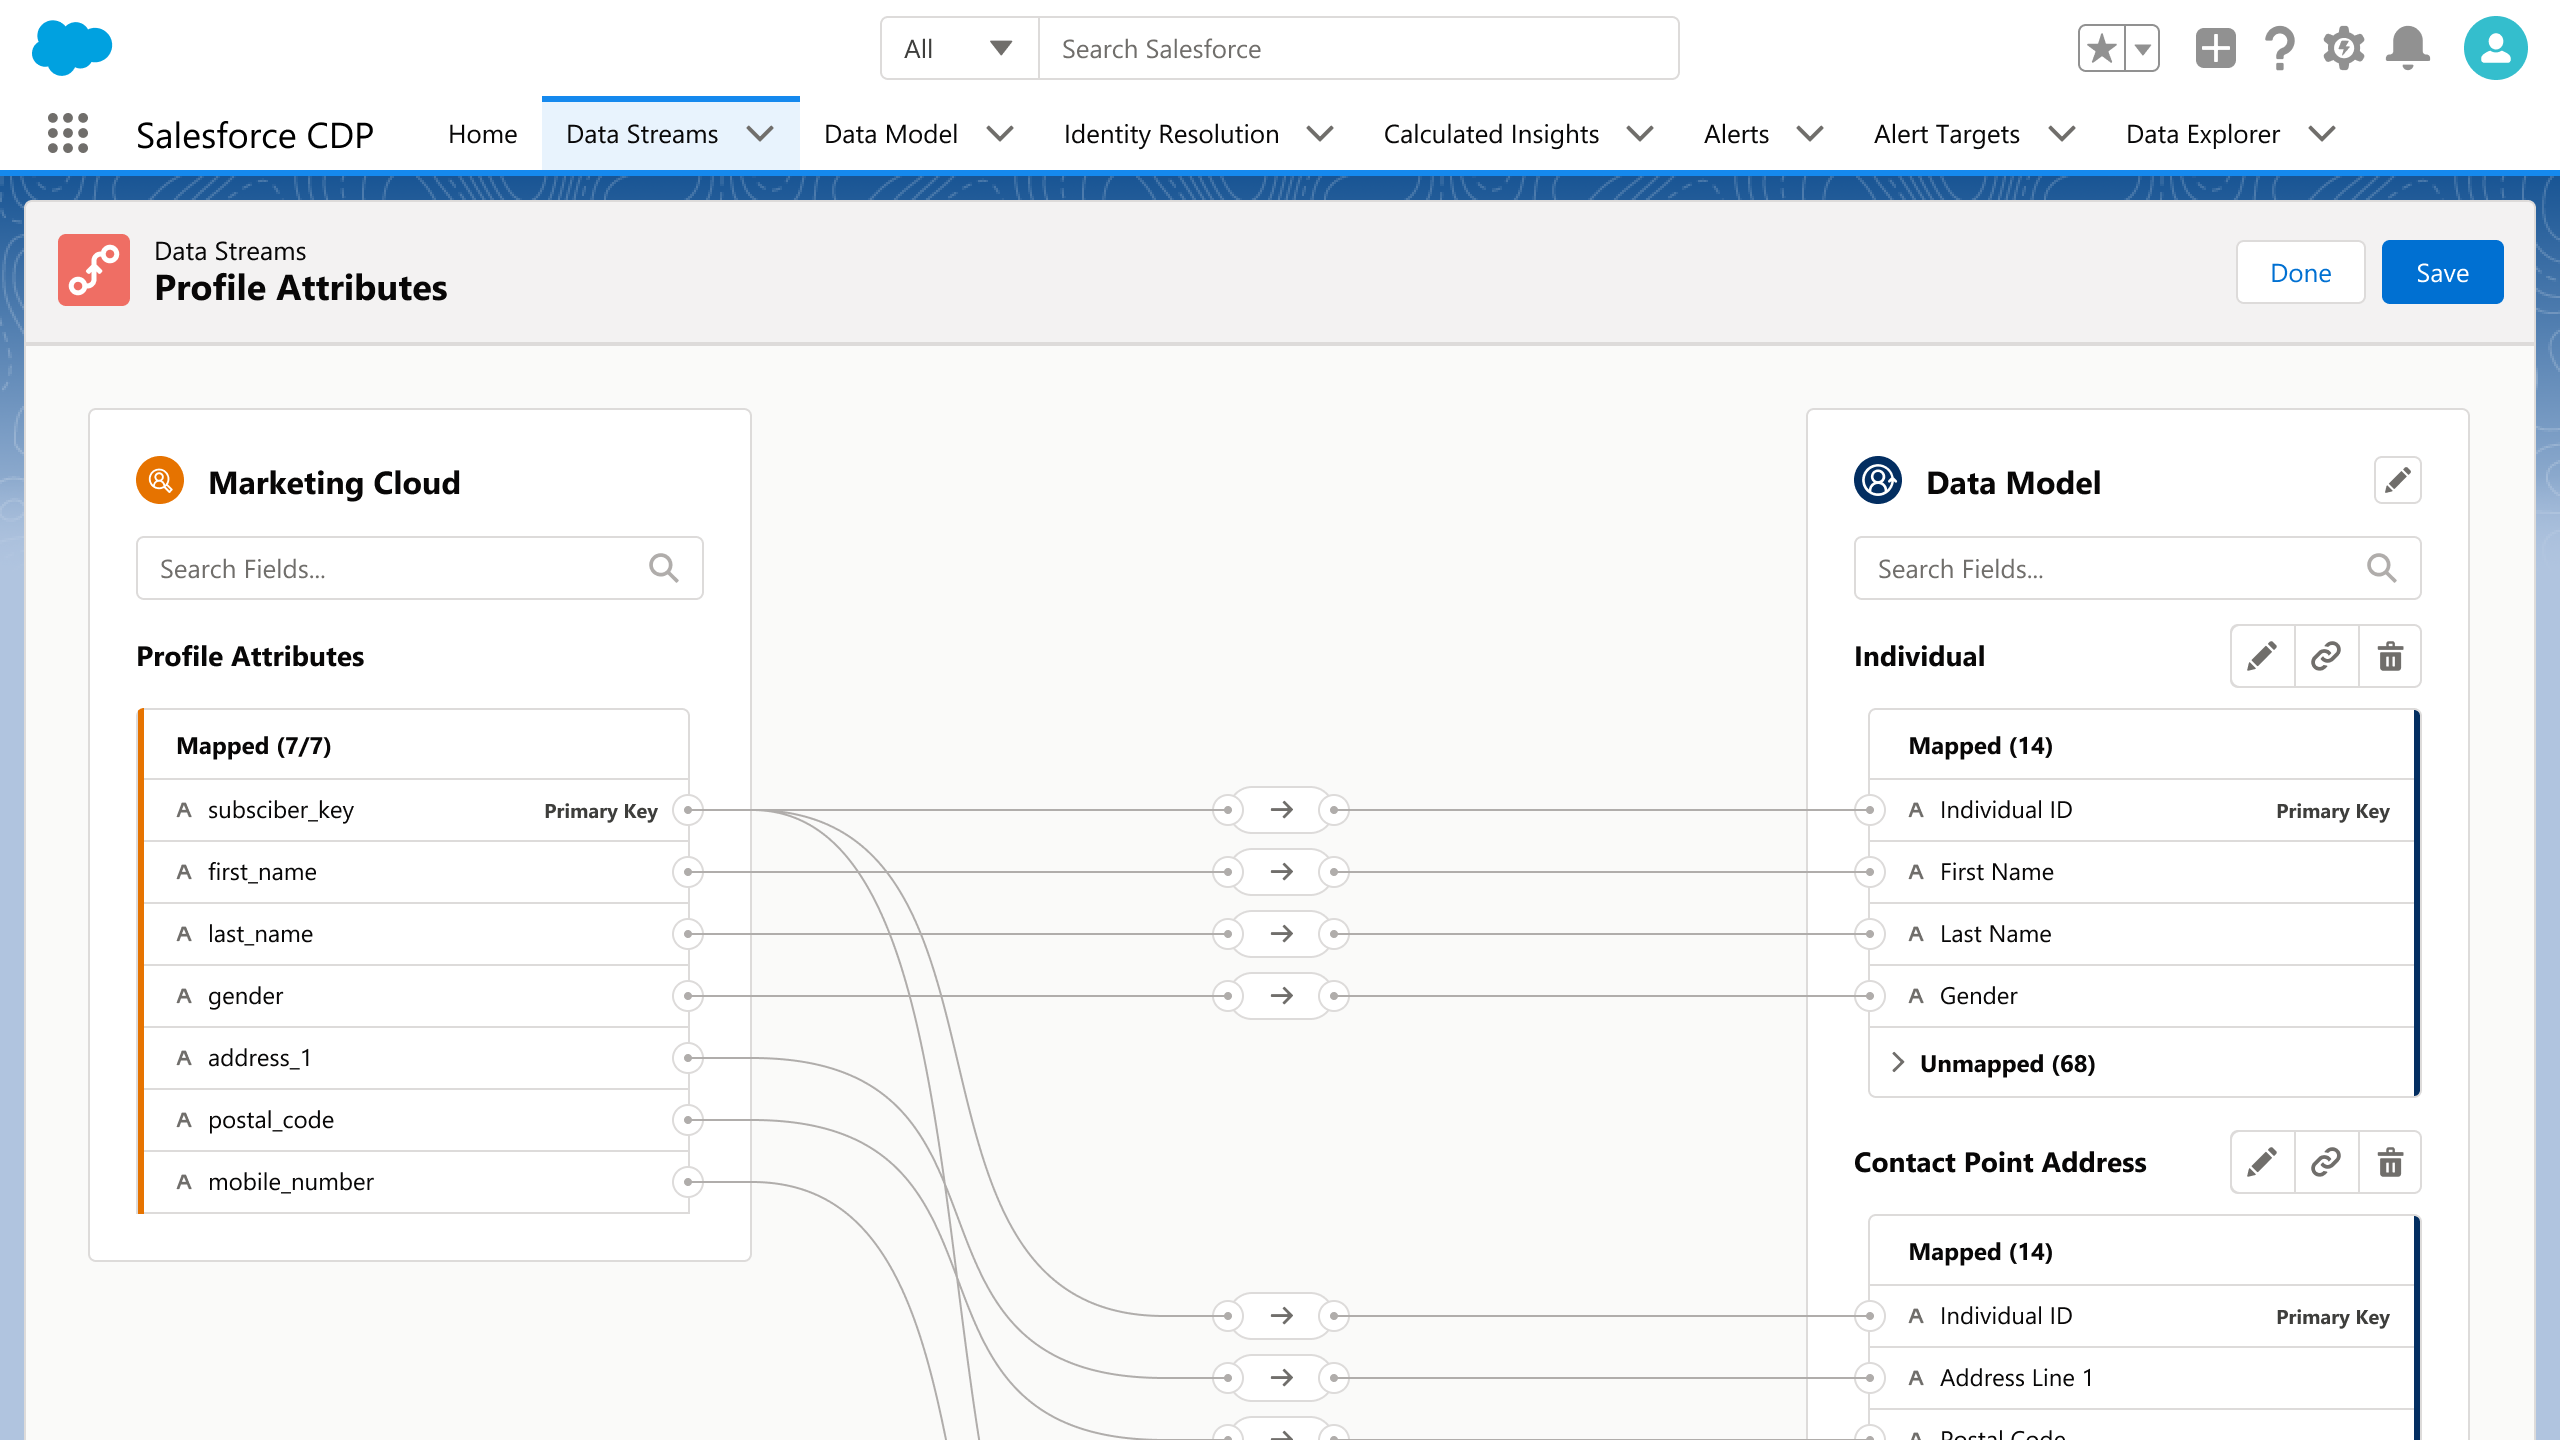 Salesforce CDP - Data Streams and Mapping